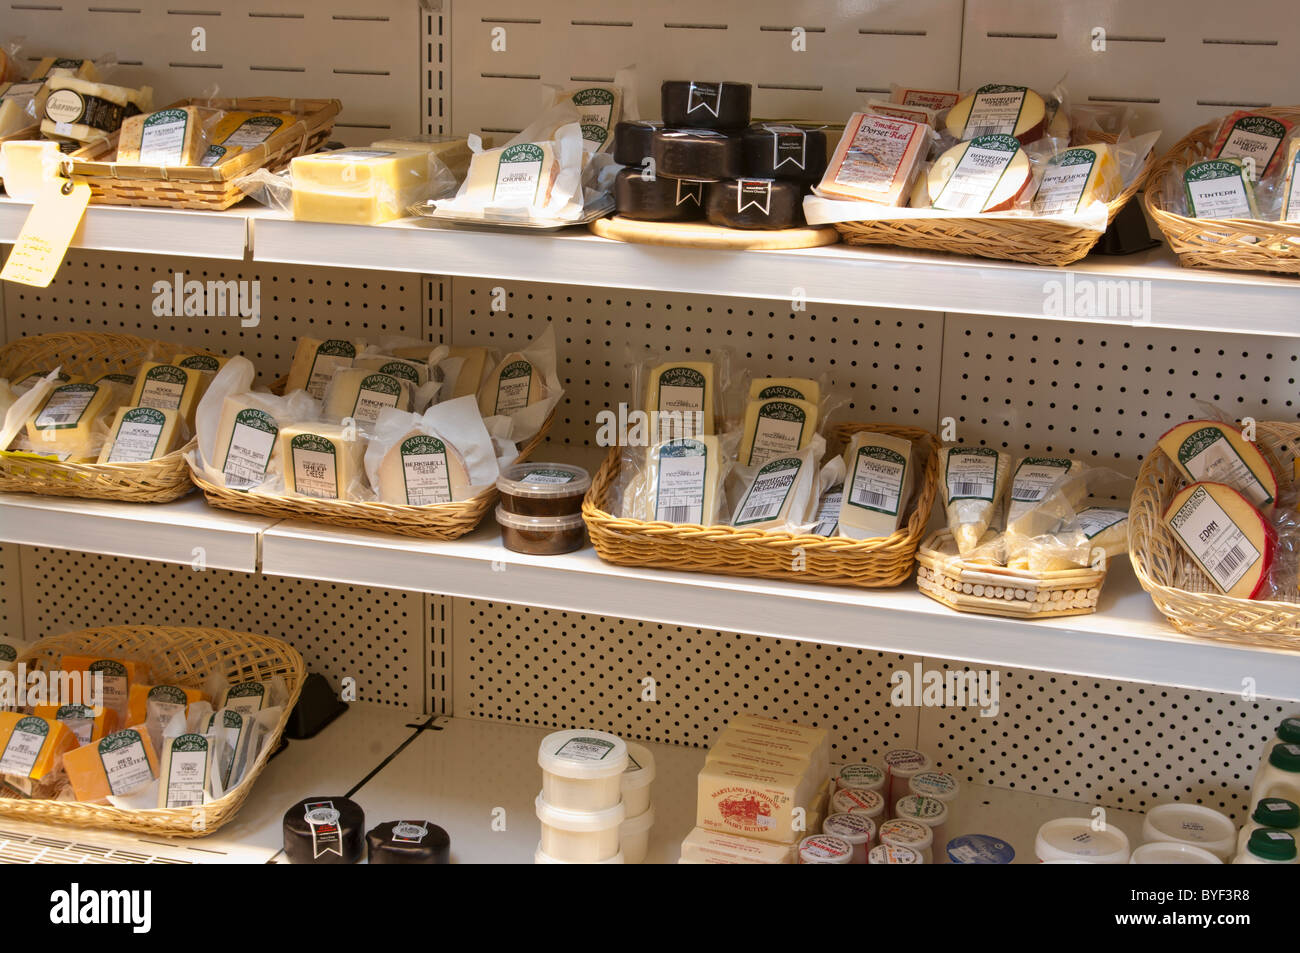 Cheese Cold Cabinet in A Farm Shop - Stock Image